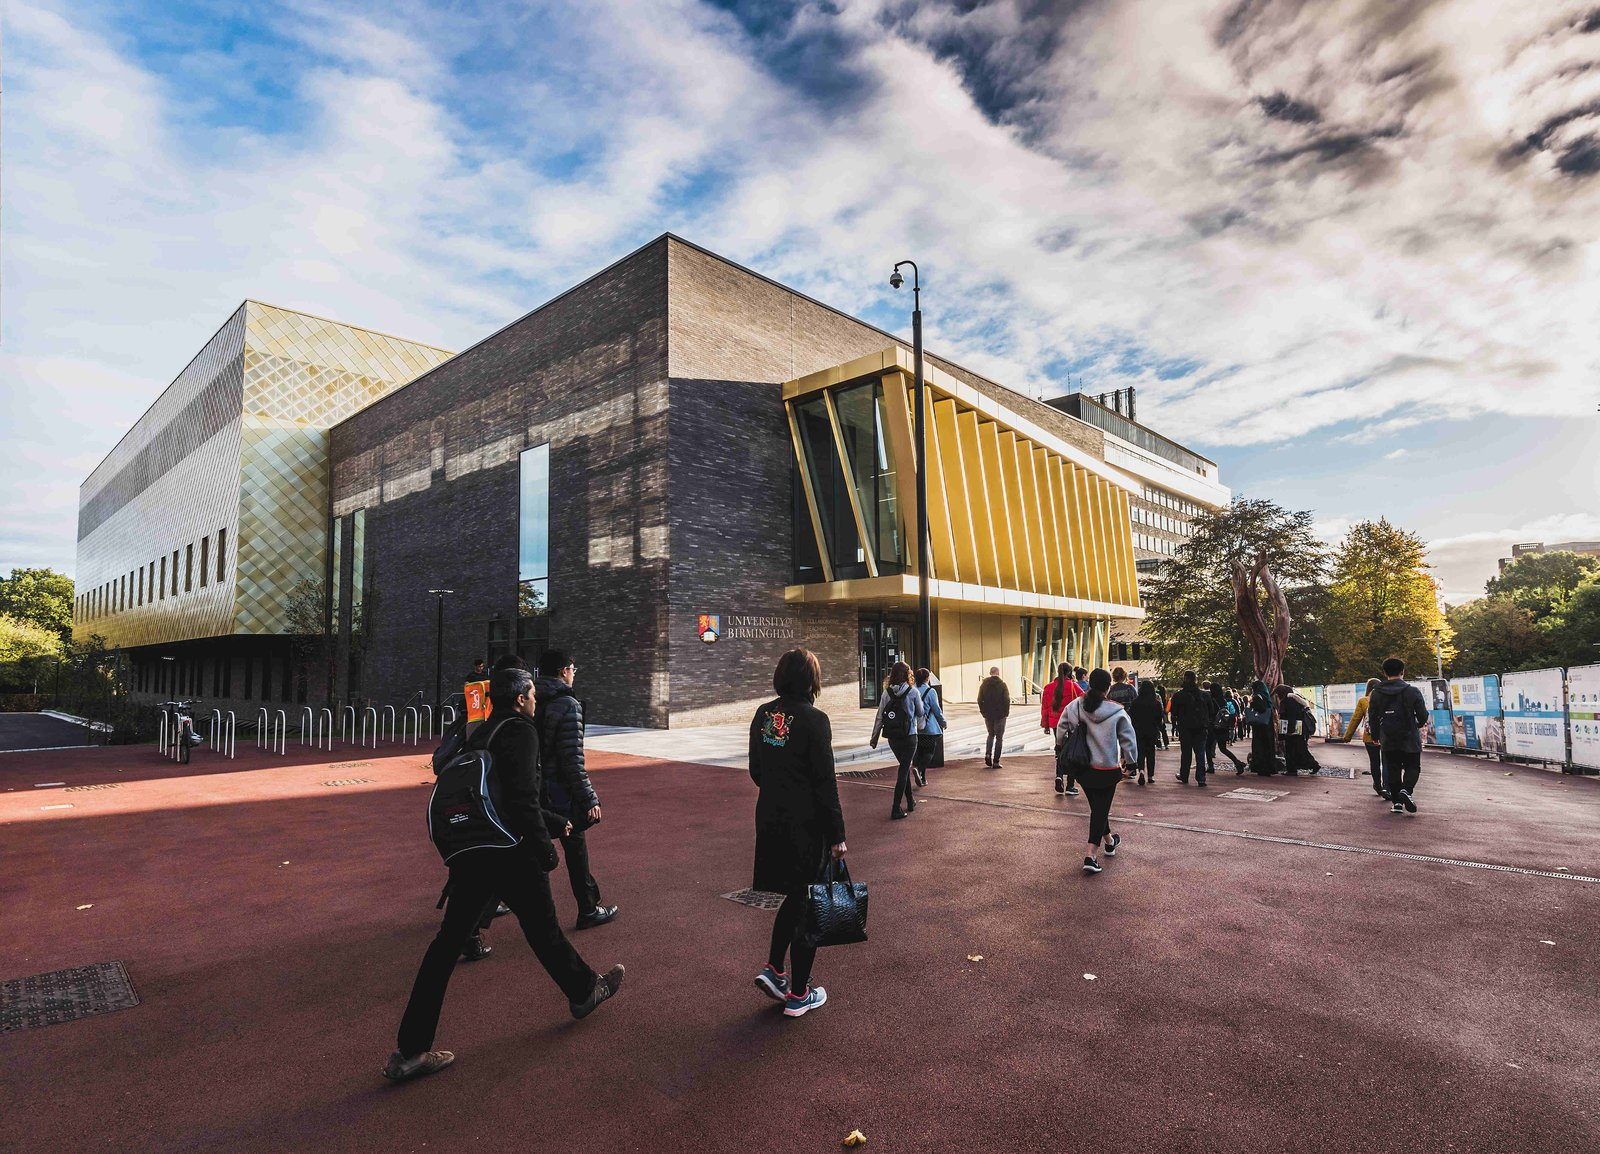 Image of the front of the Collaborative Teaching Laboratory at the University of Birmingham